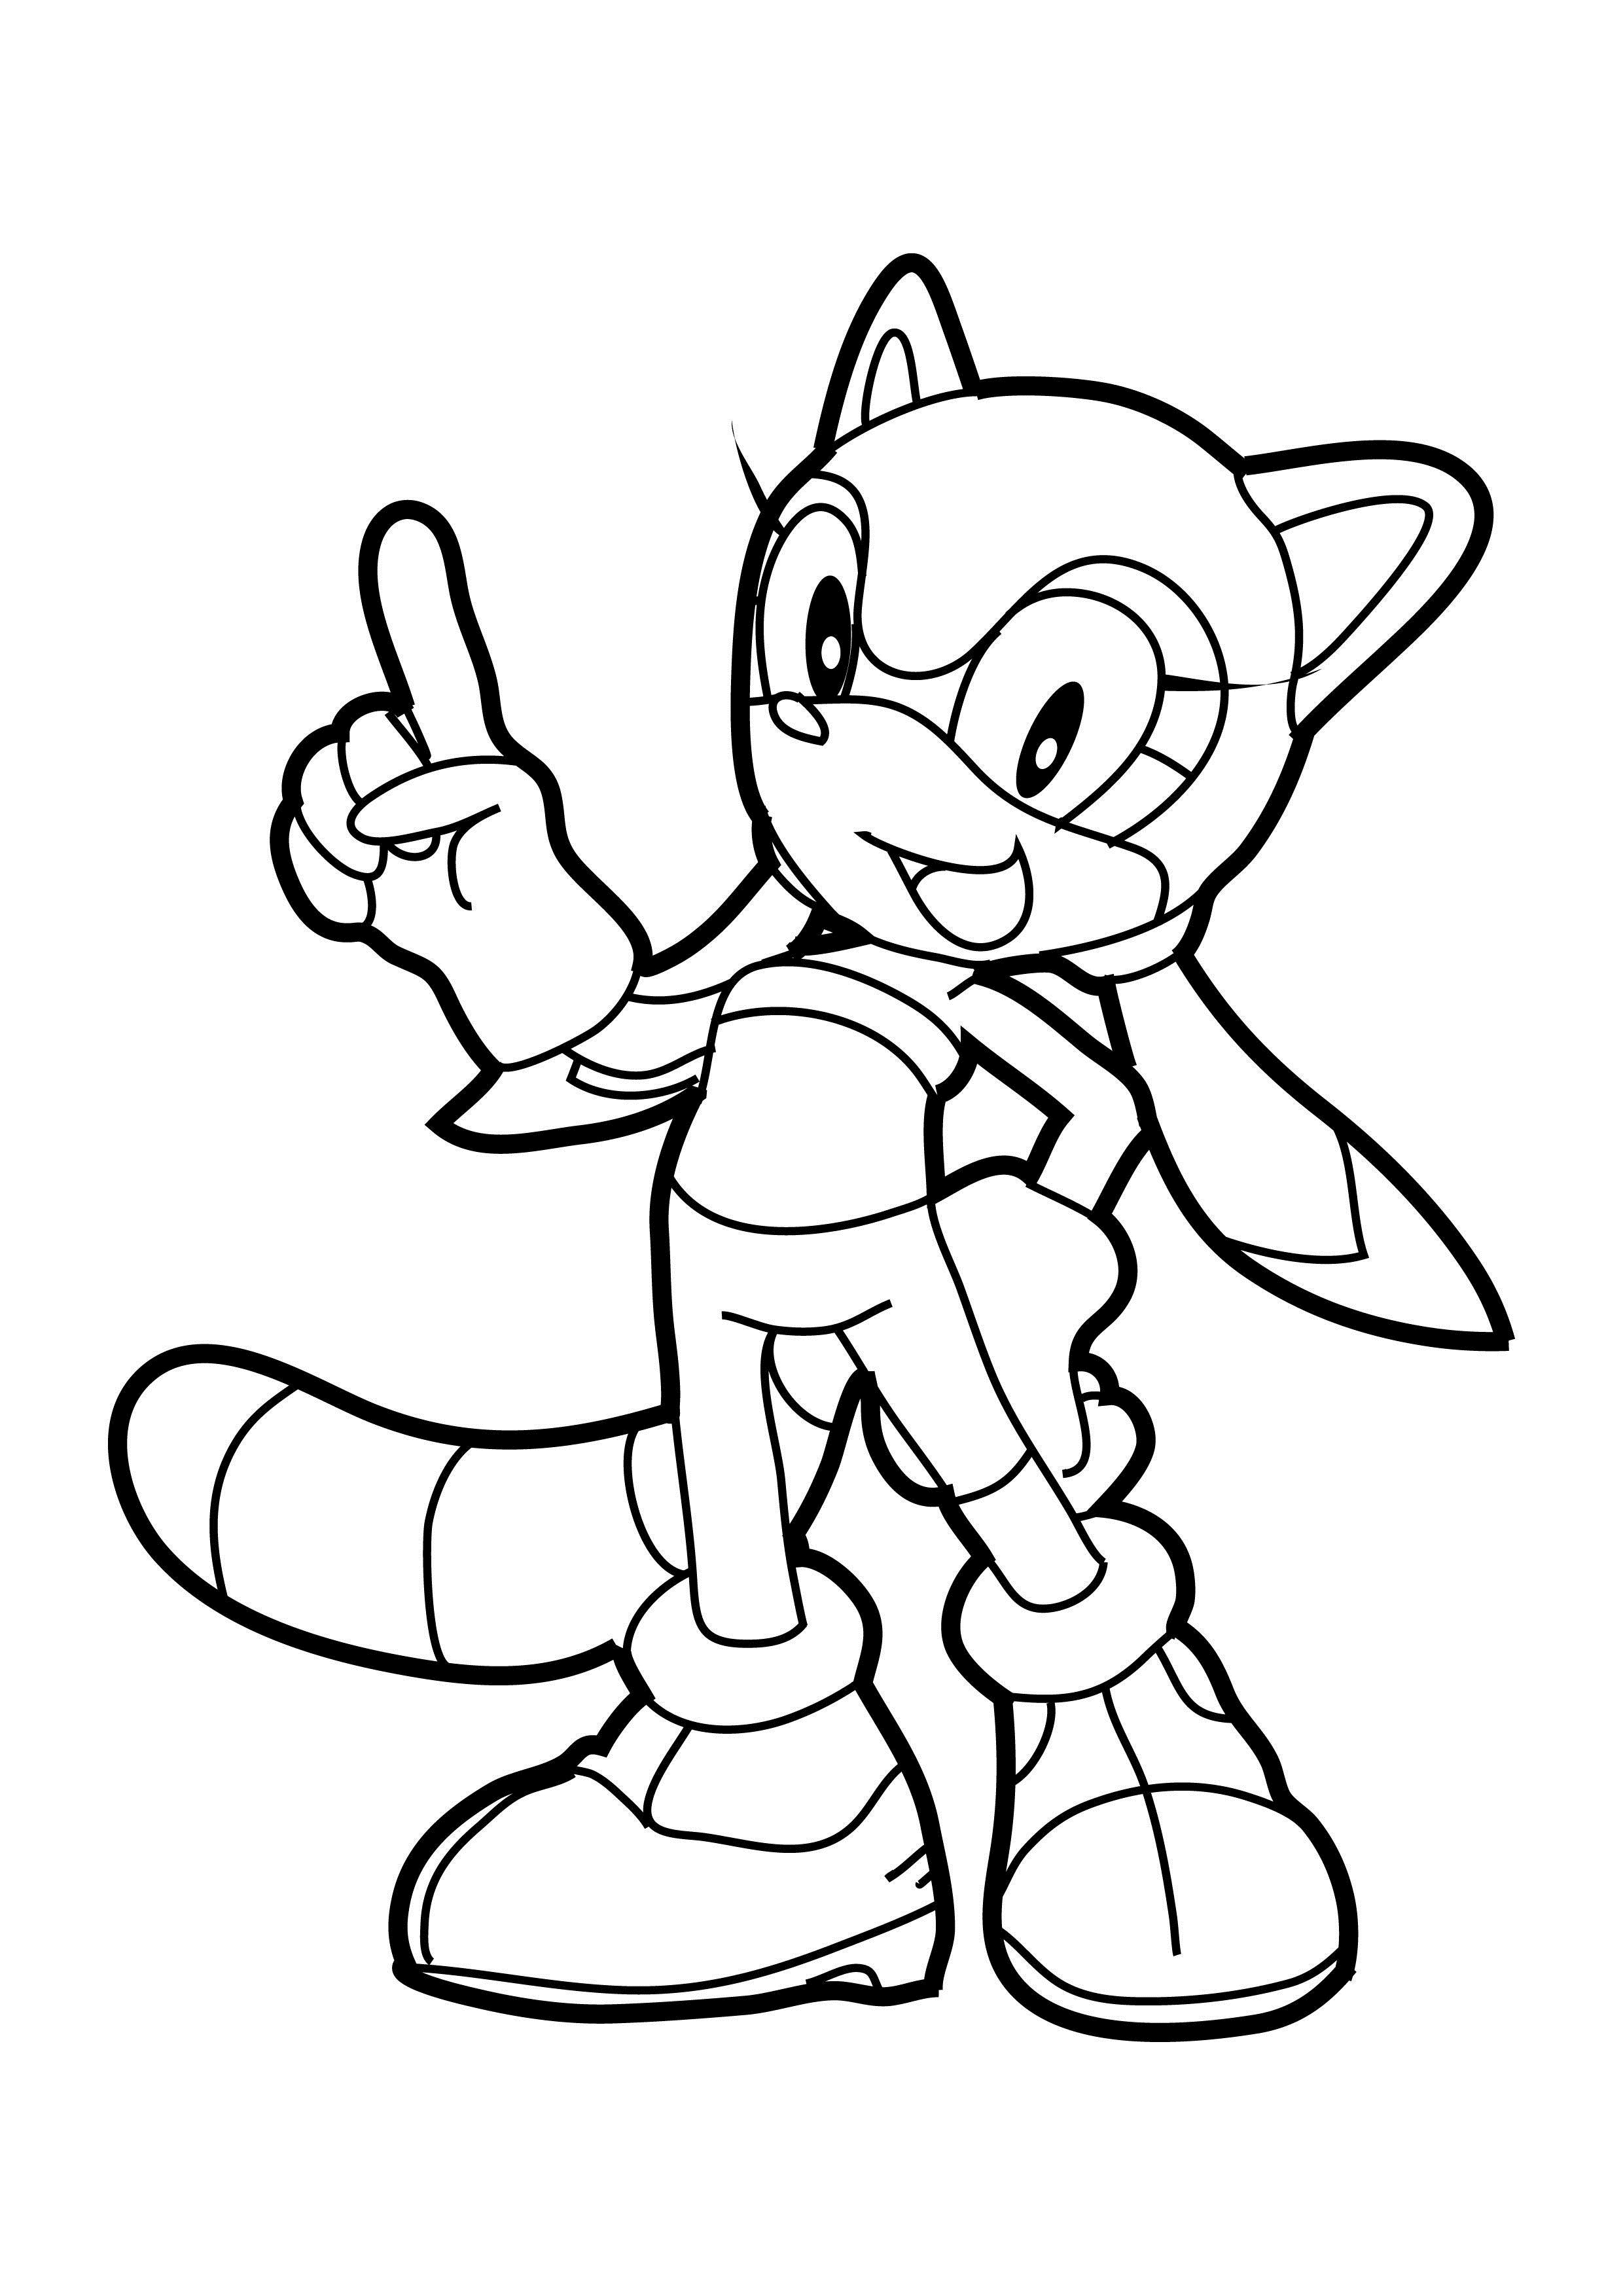 Sonic Tails Coloring Pages at GetDrawings | Free download